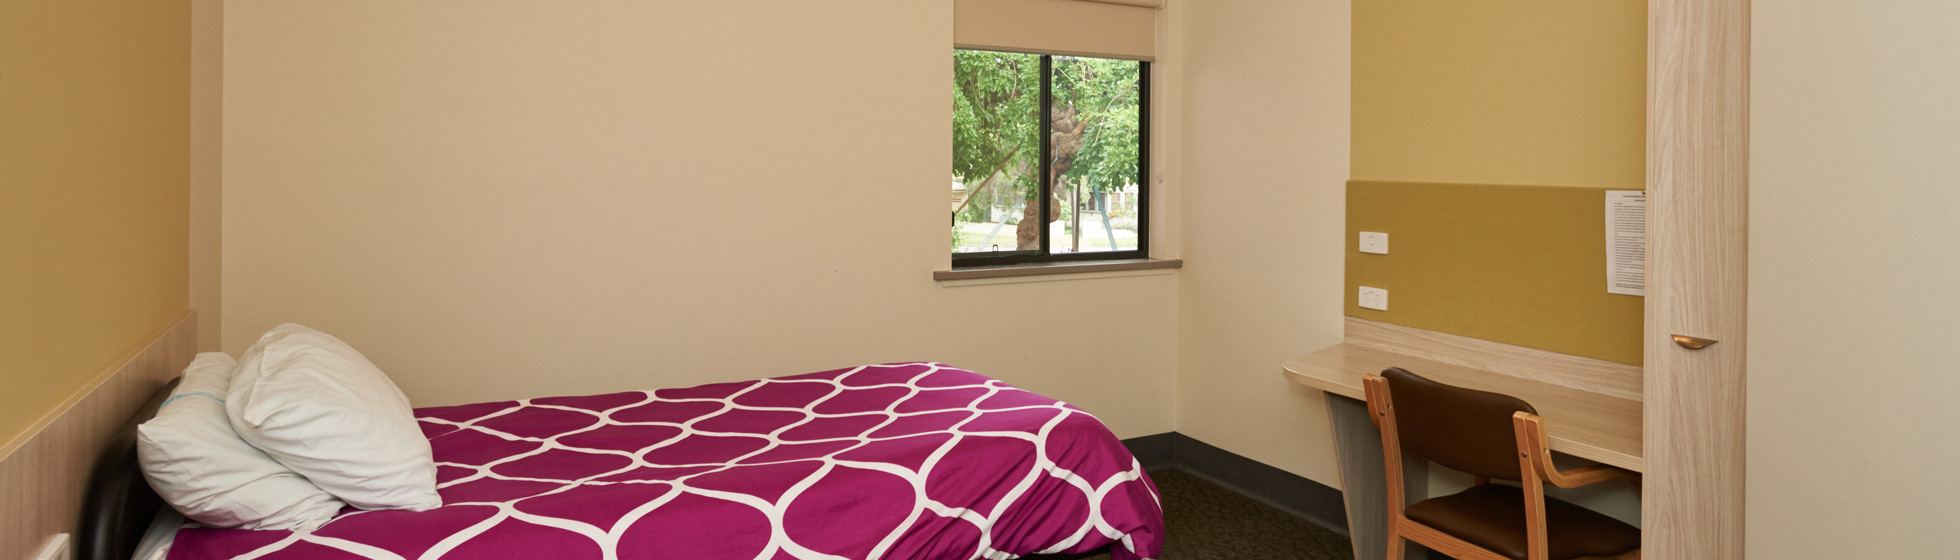 Private patient room at Riverina hospital